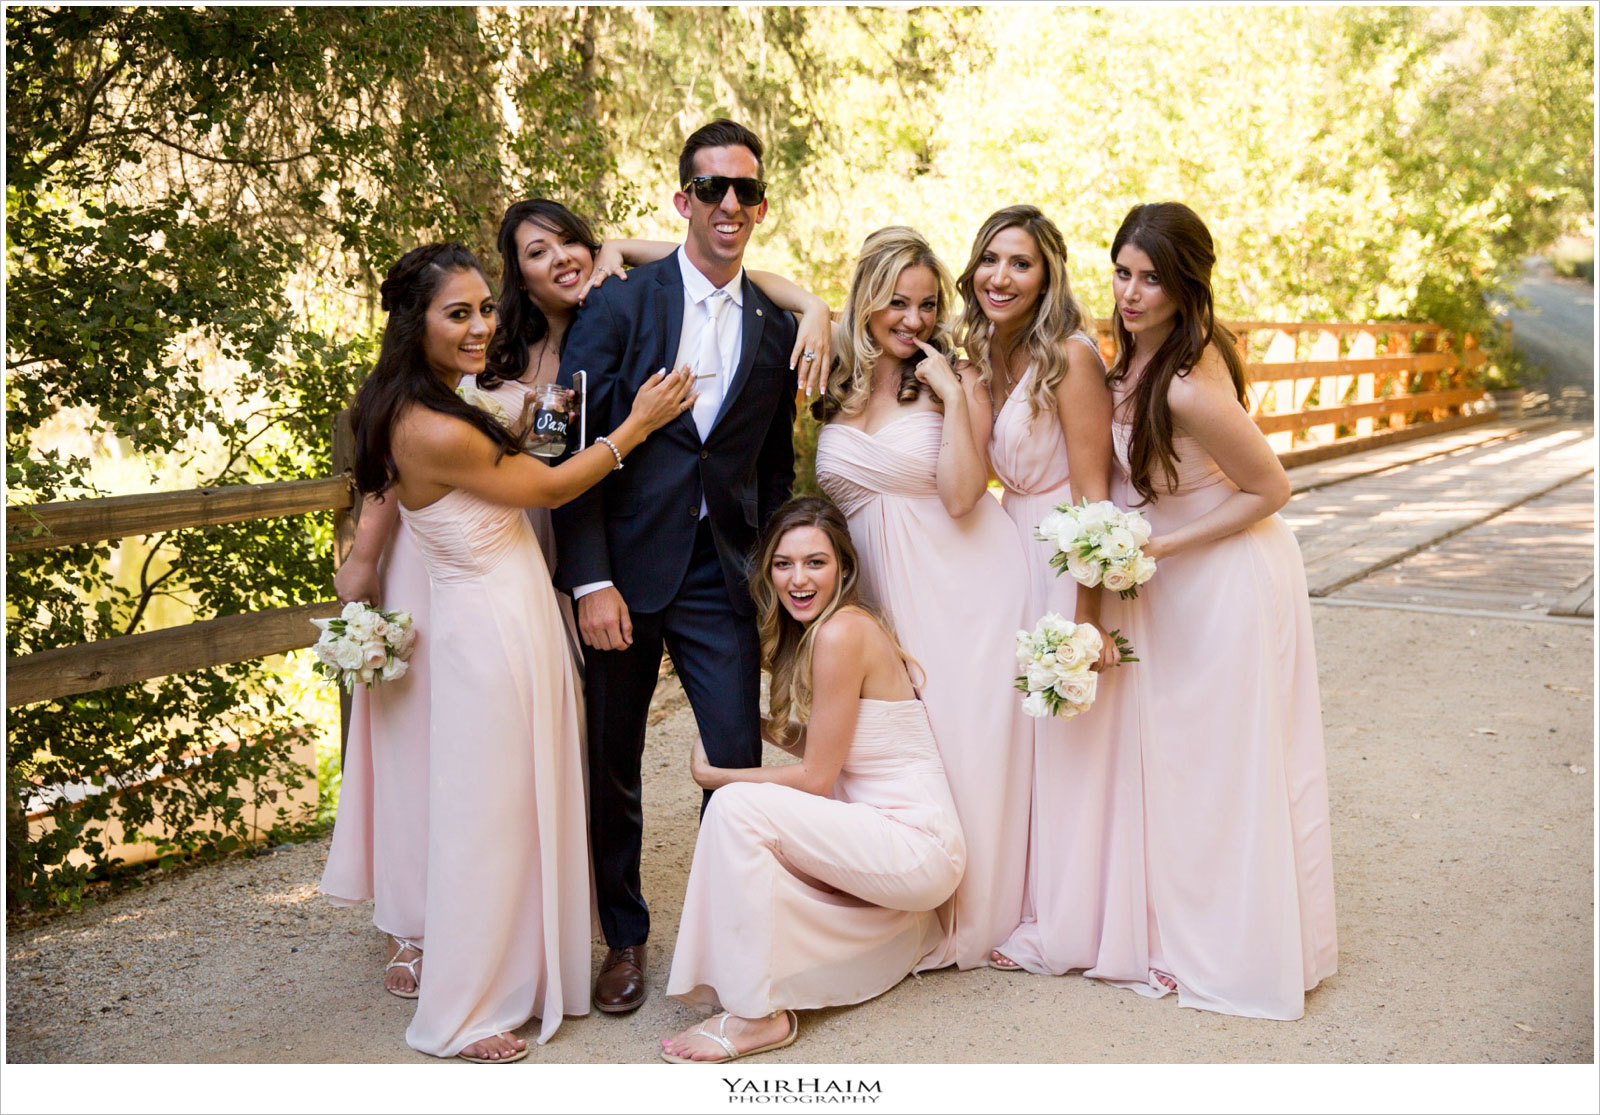 Destination-wedding-photographer-Yair-Haim-35